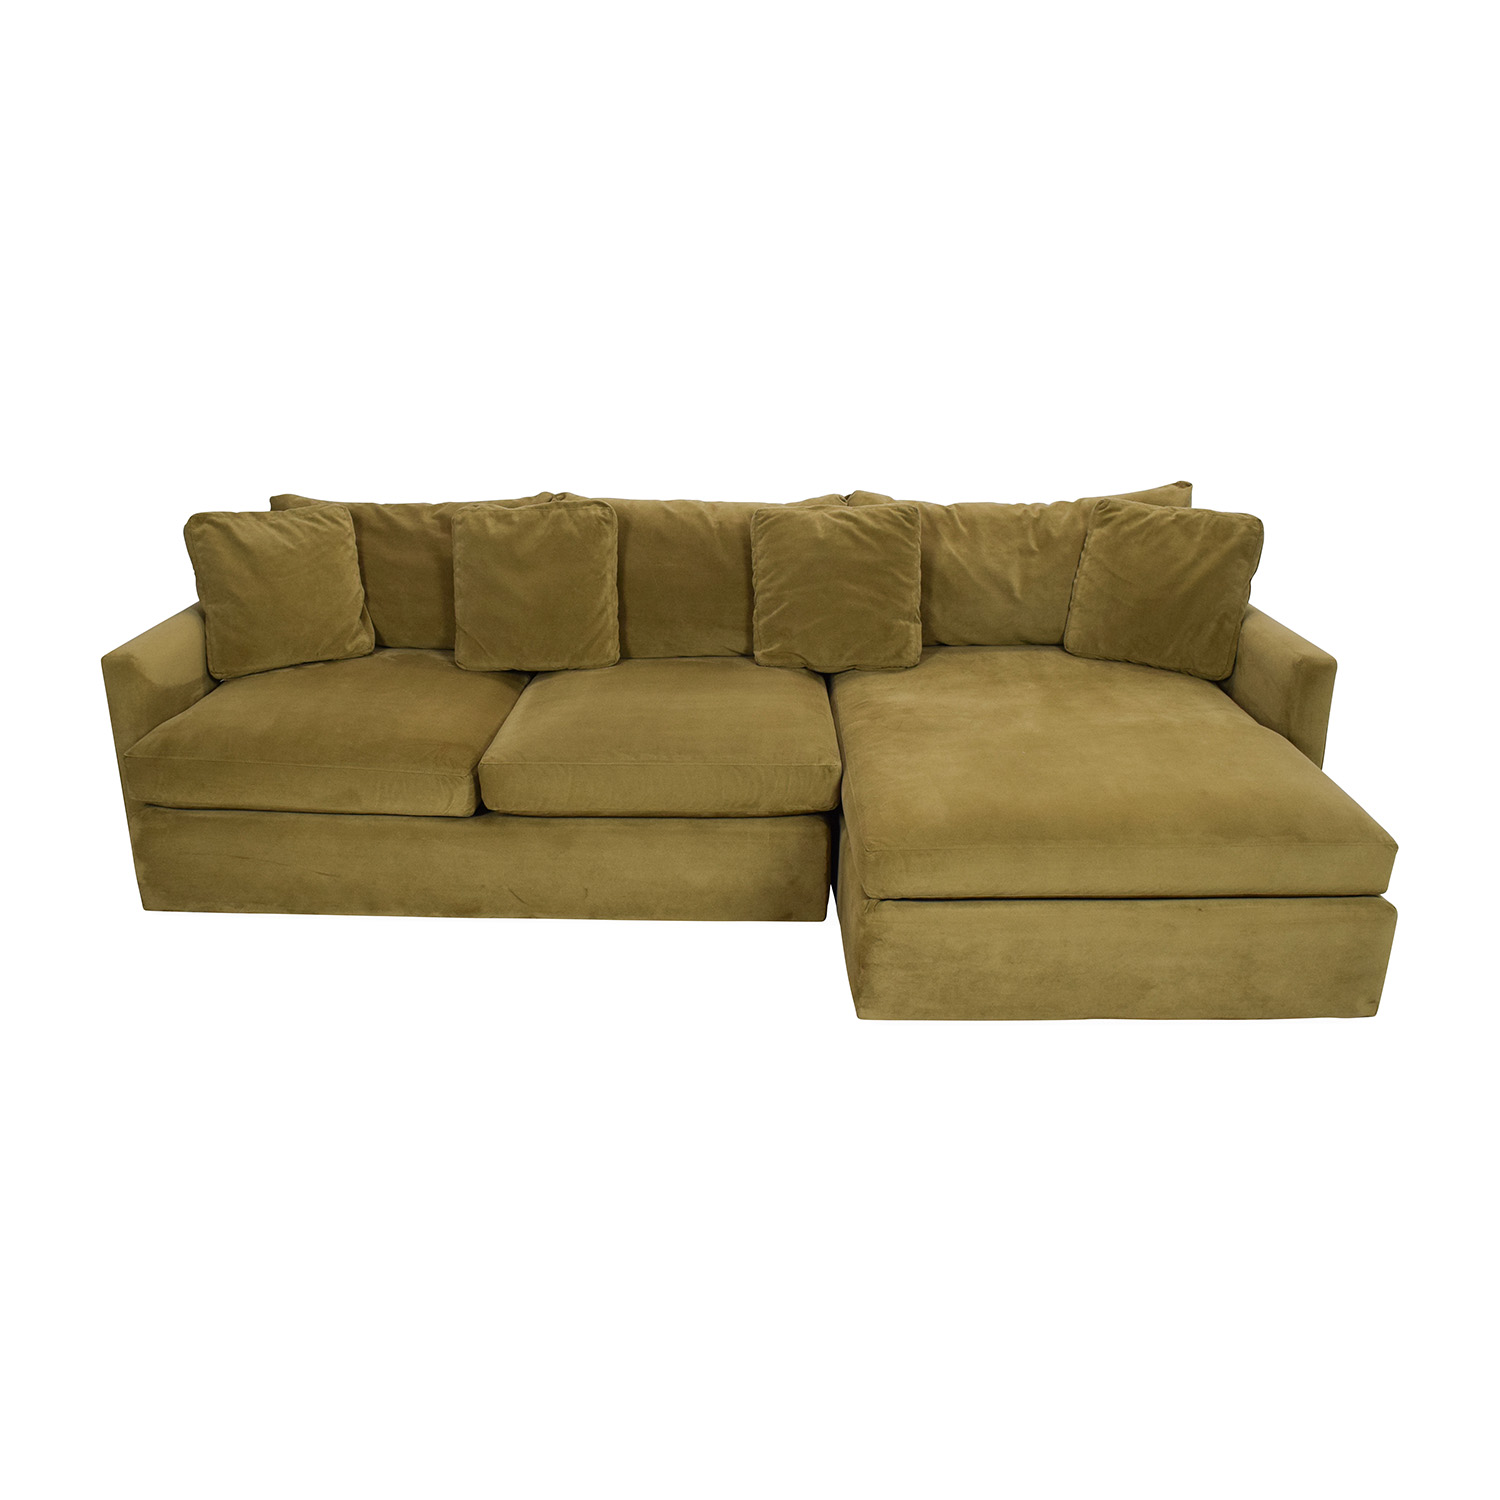 buy Crate and Barrel Lounge II Sectional Sofa Crate and Barrel Sofas